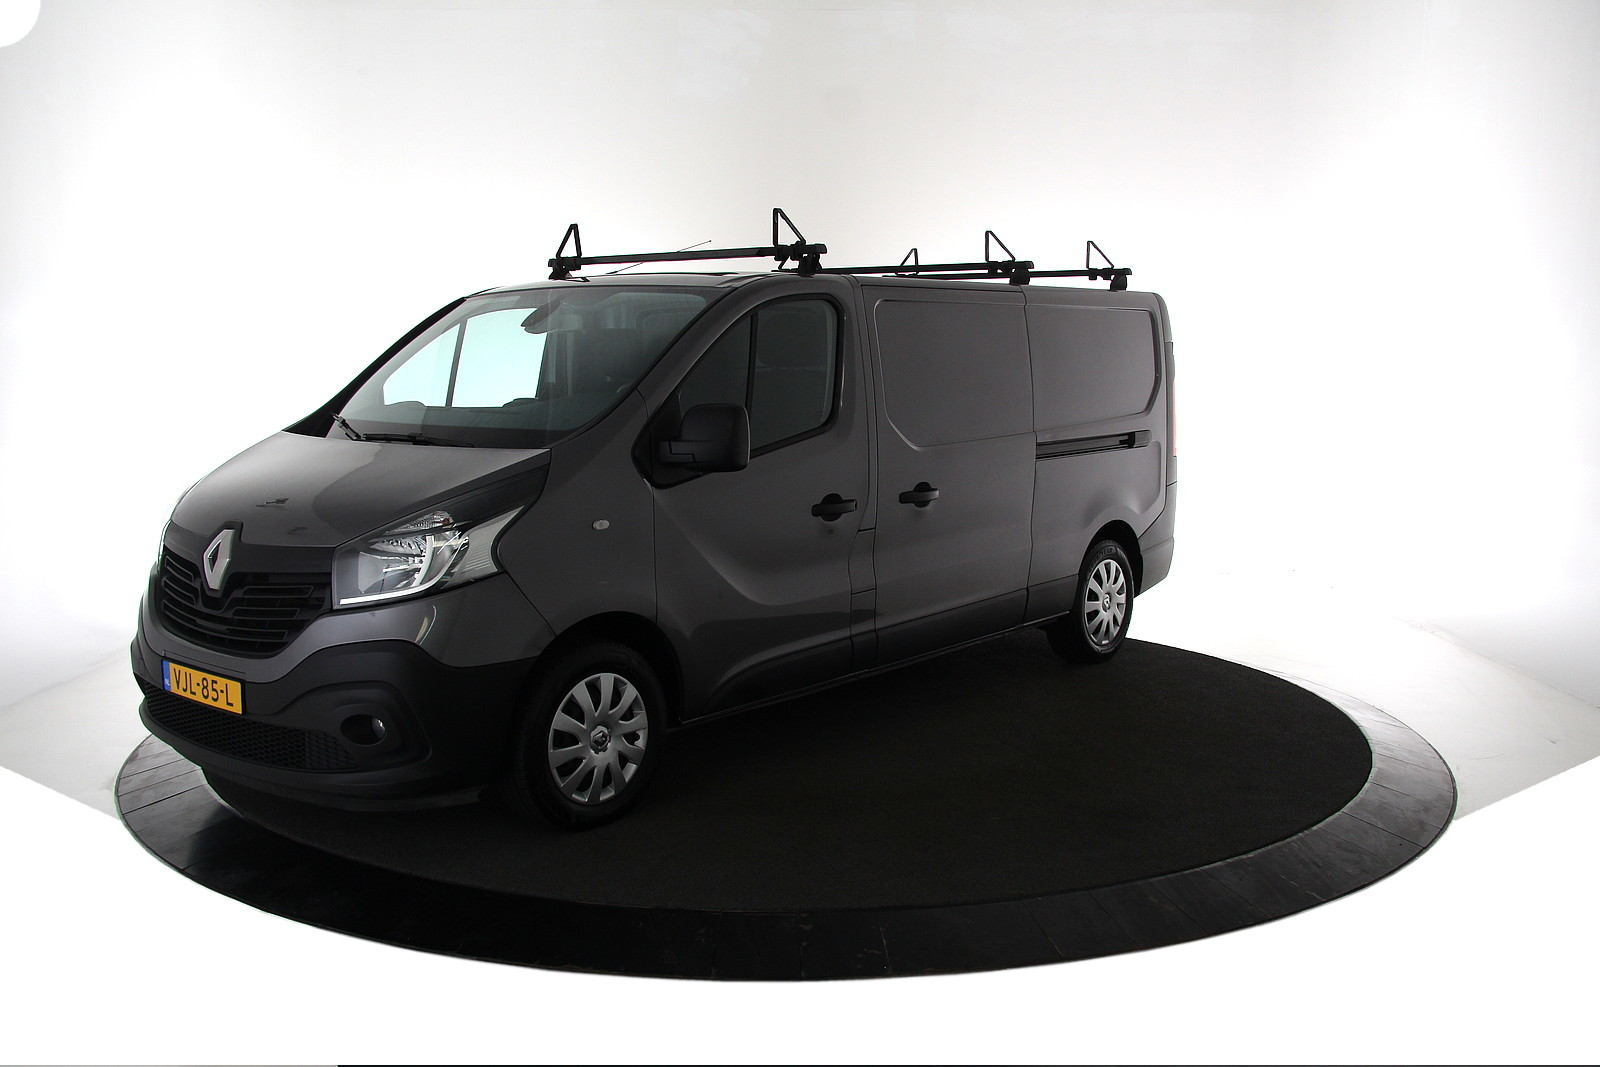 Renault Trafic 1.6 dCi T29 L1H1 3 Persoons